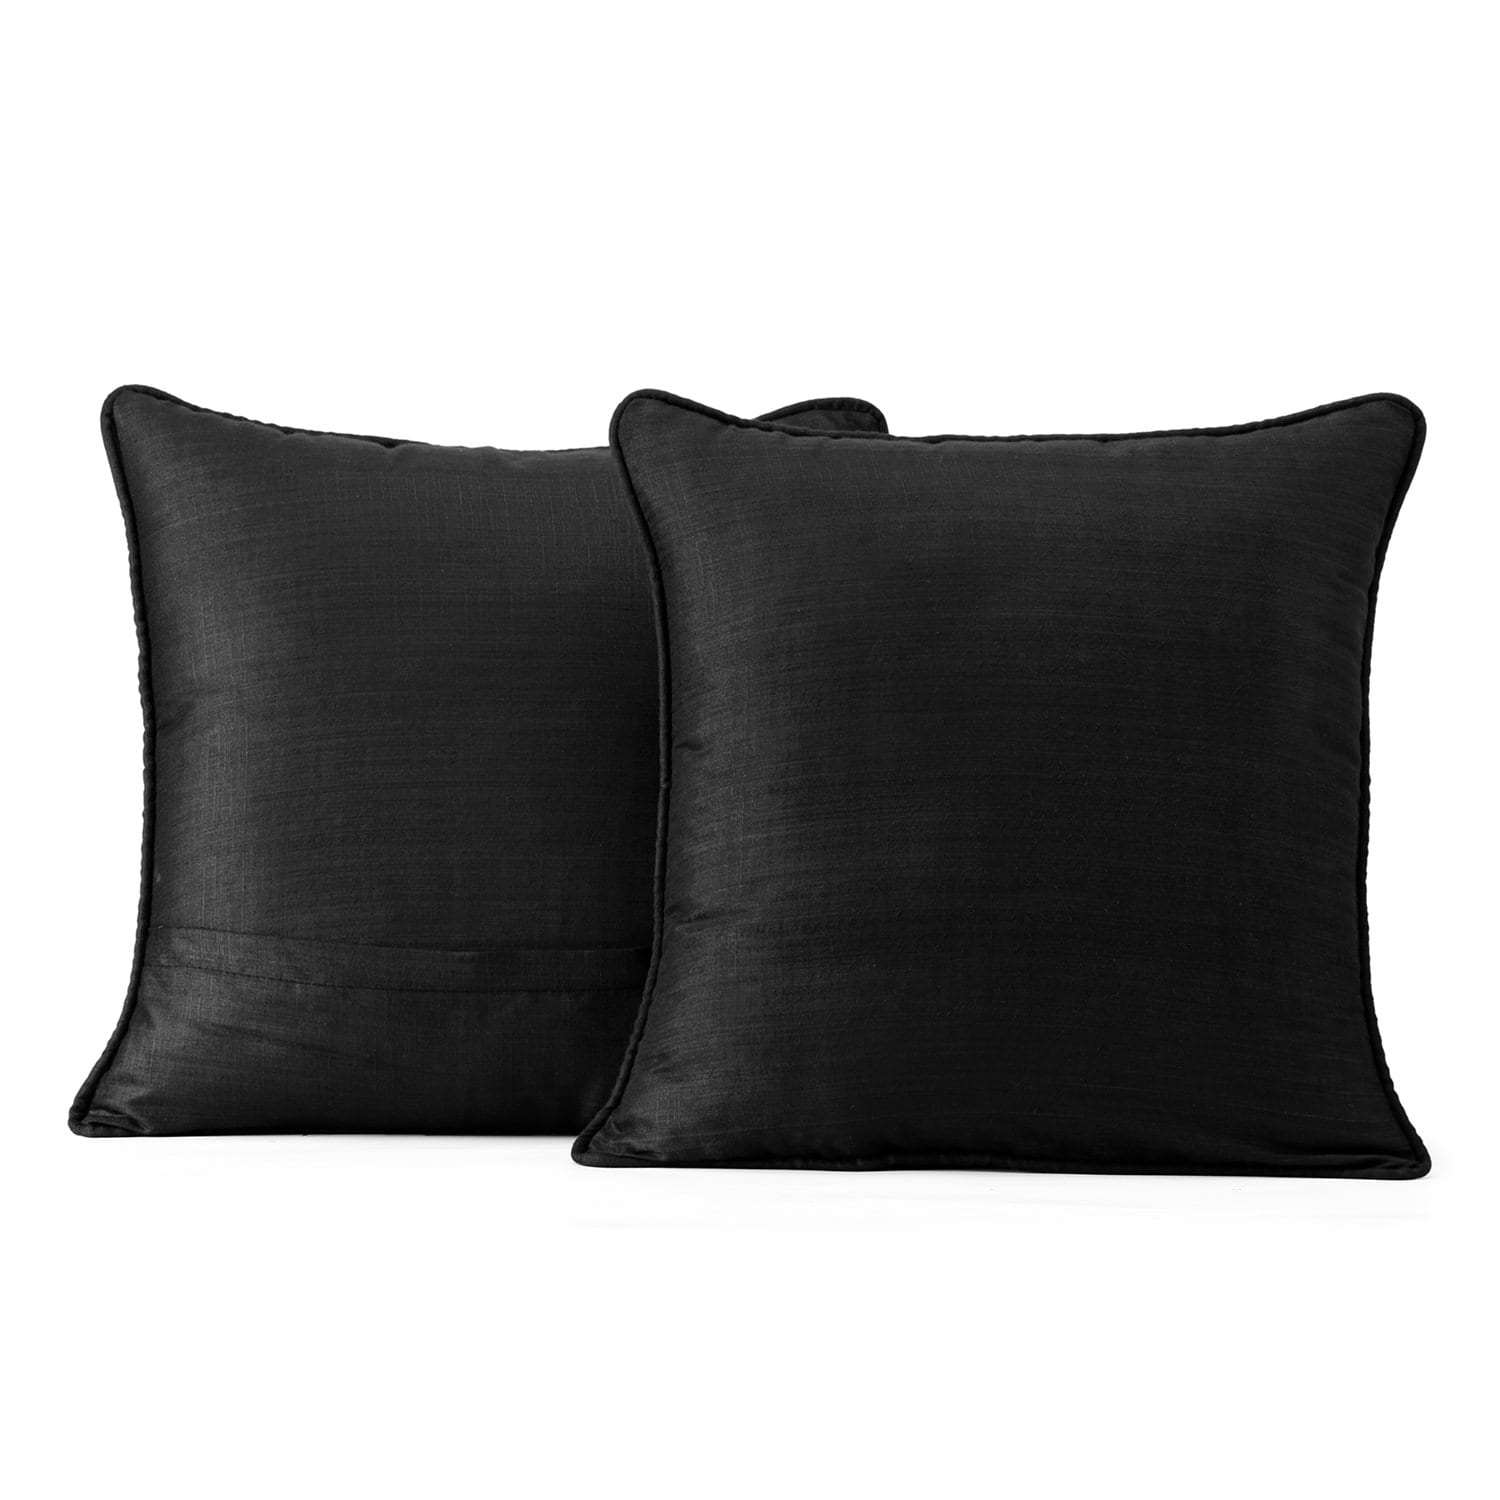 Papillon Black Designer Shantung Faux Silk Cushion Cover - Pair